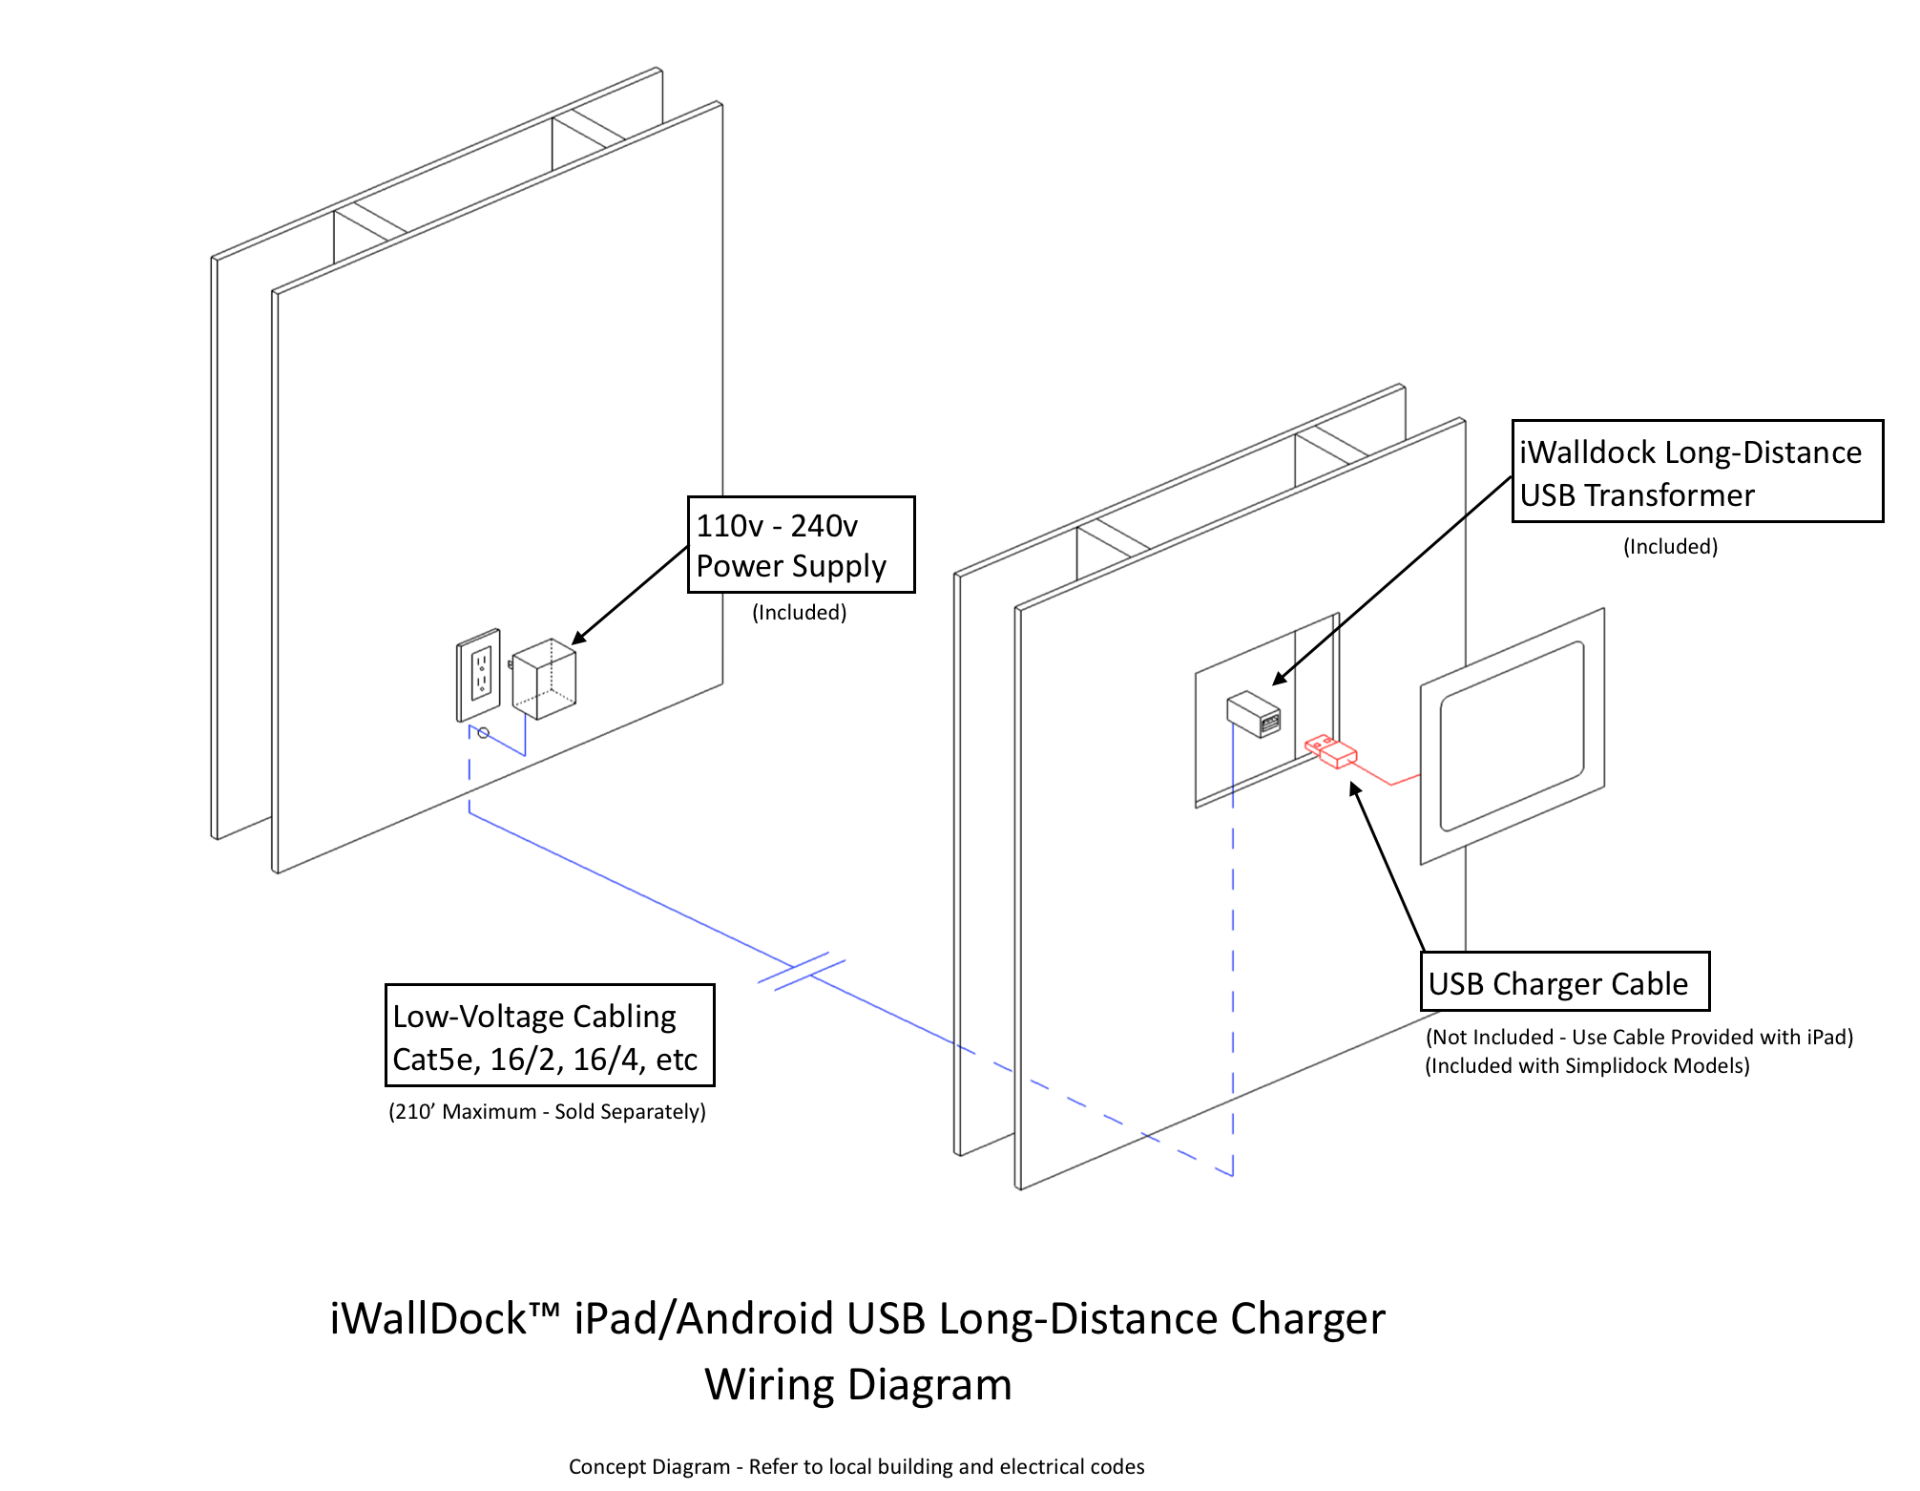 iWalldock™ 2-Wire USB Charging Kit In-Wall Tablet Mount Dock